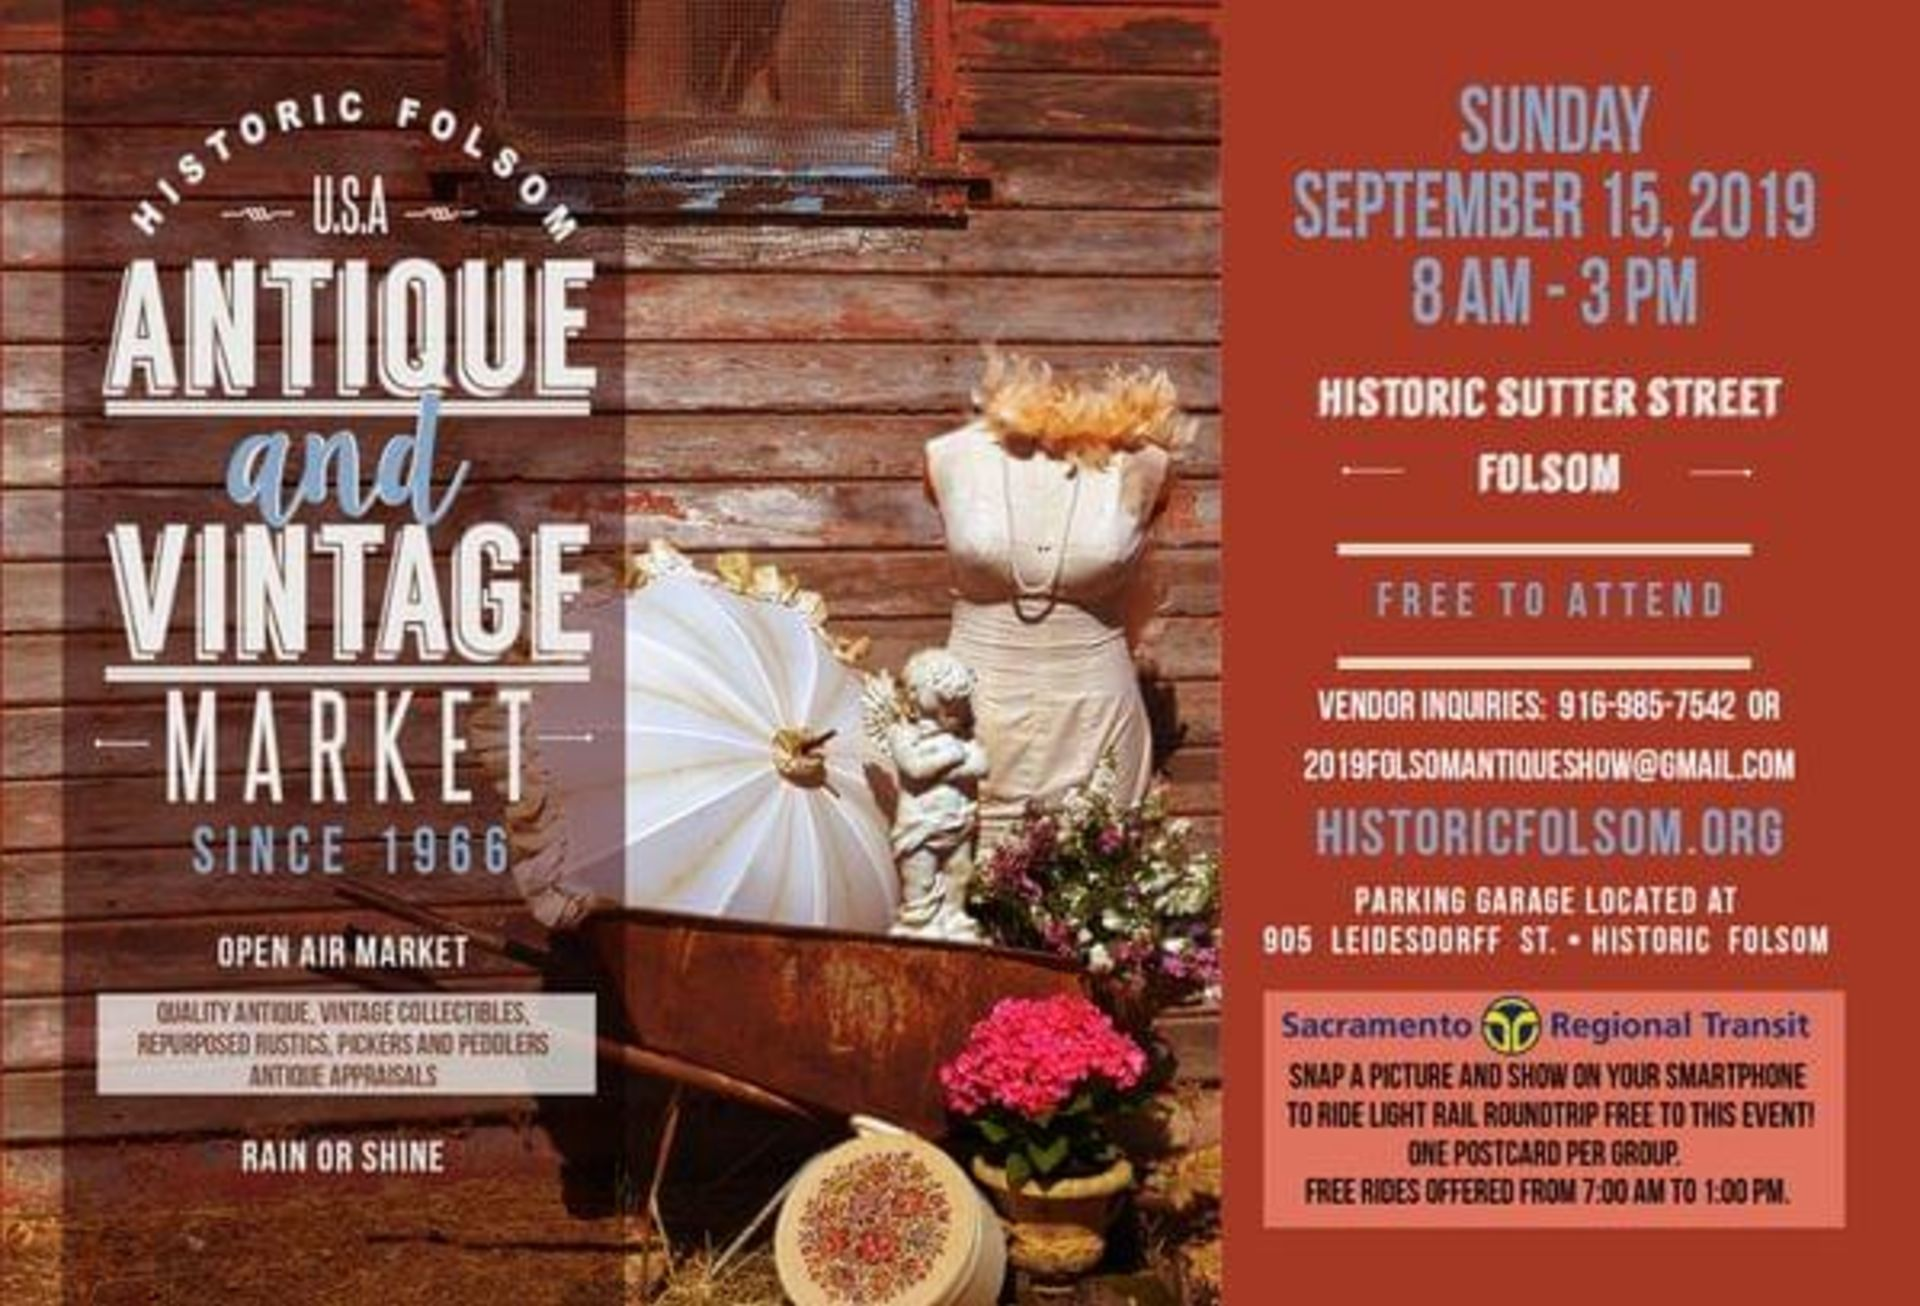 Folsom Antique and Vintage Fair Market